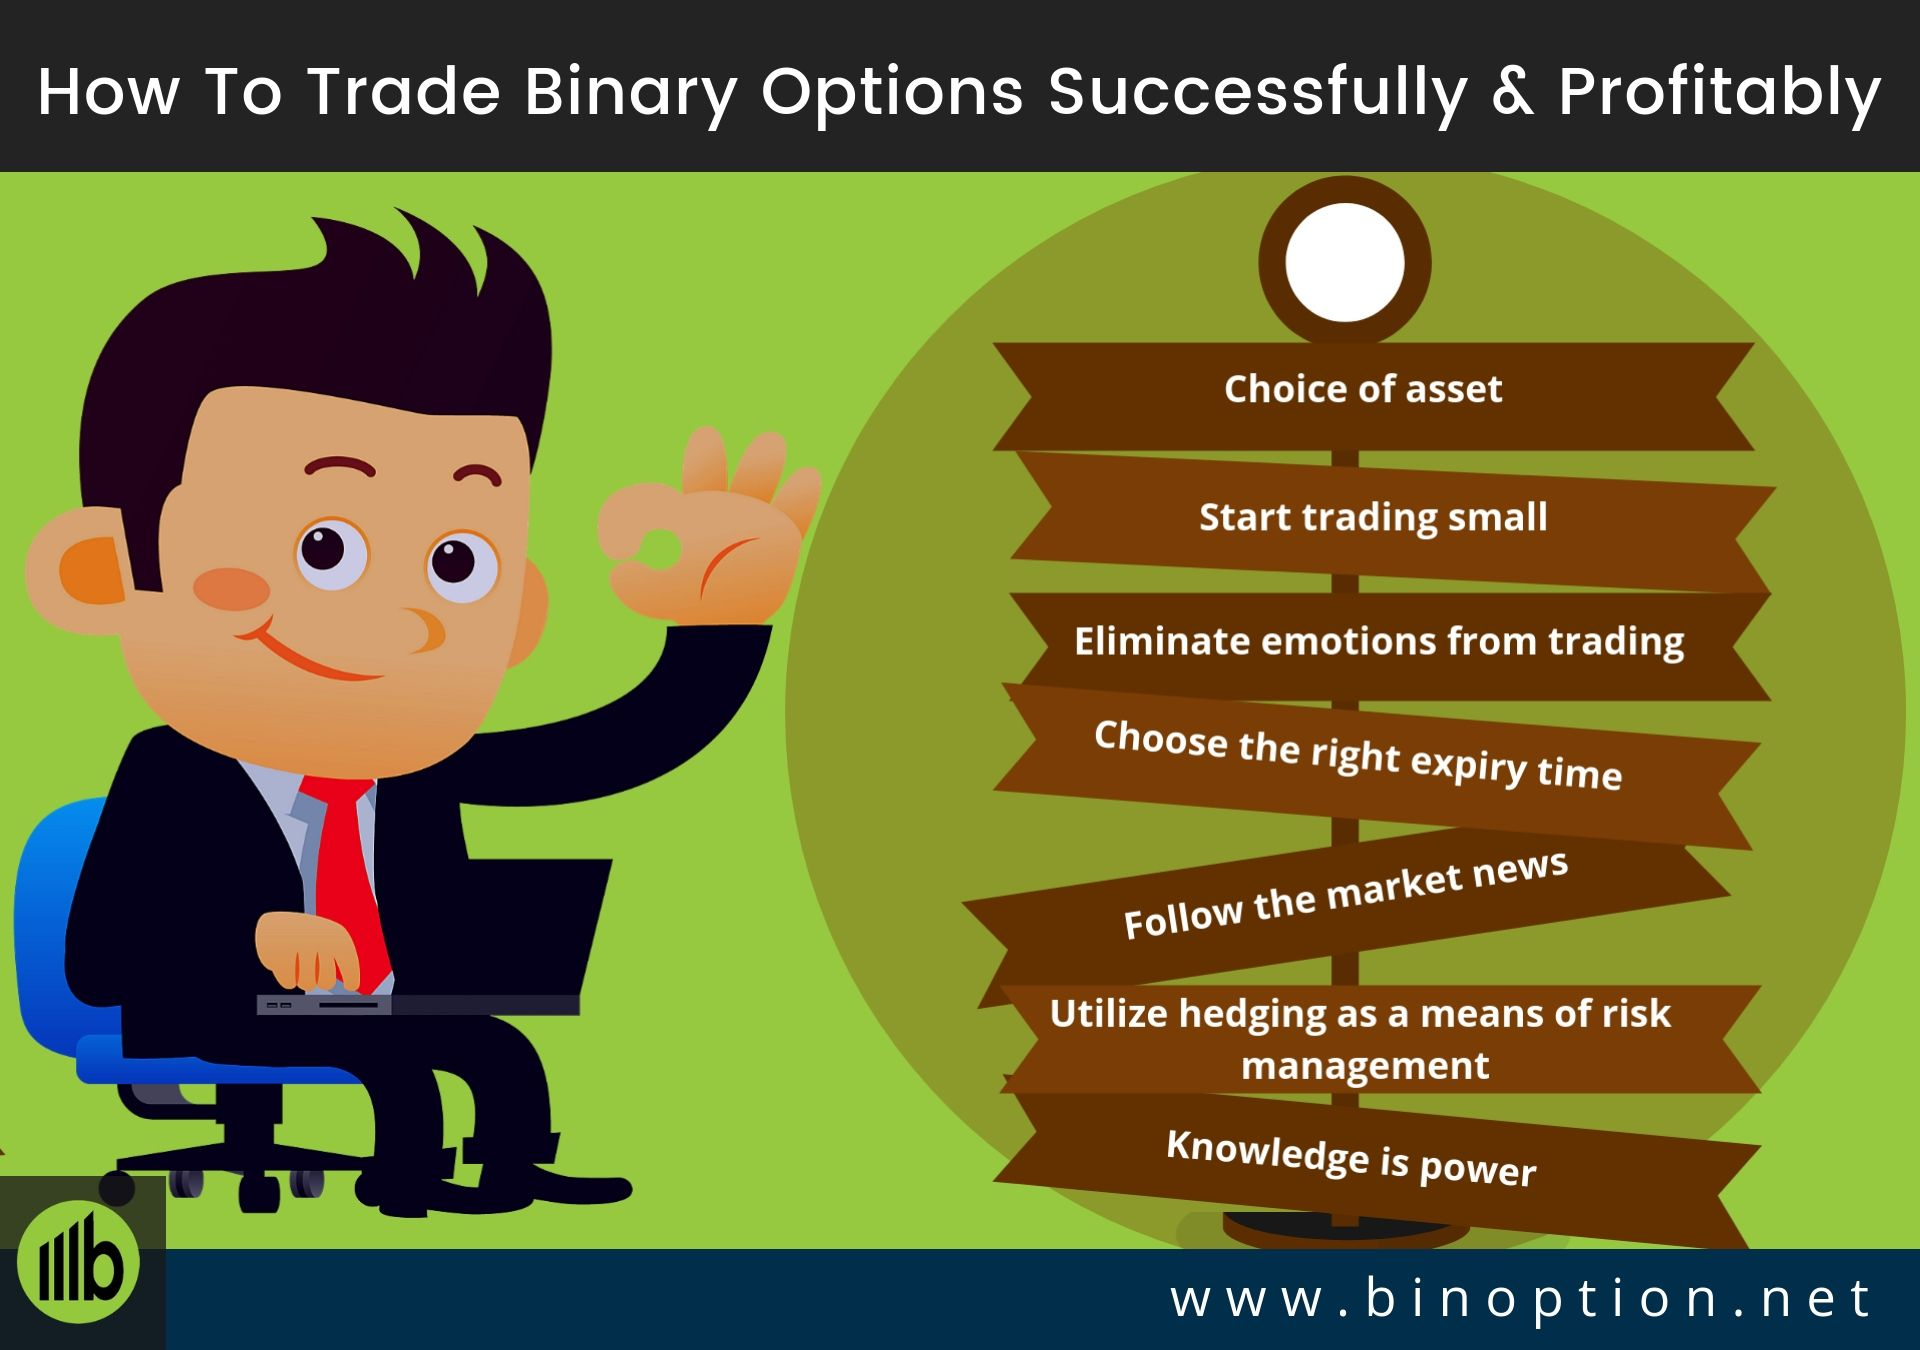 How To Trade Binary Options Successfully And Profitably